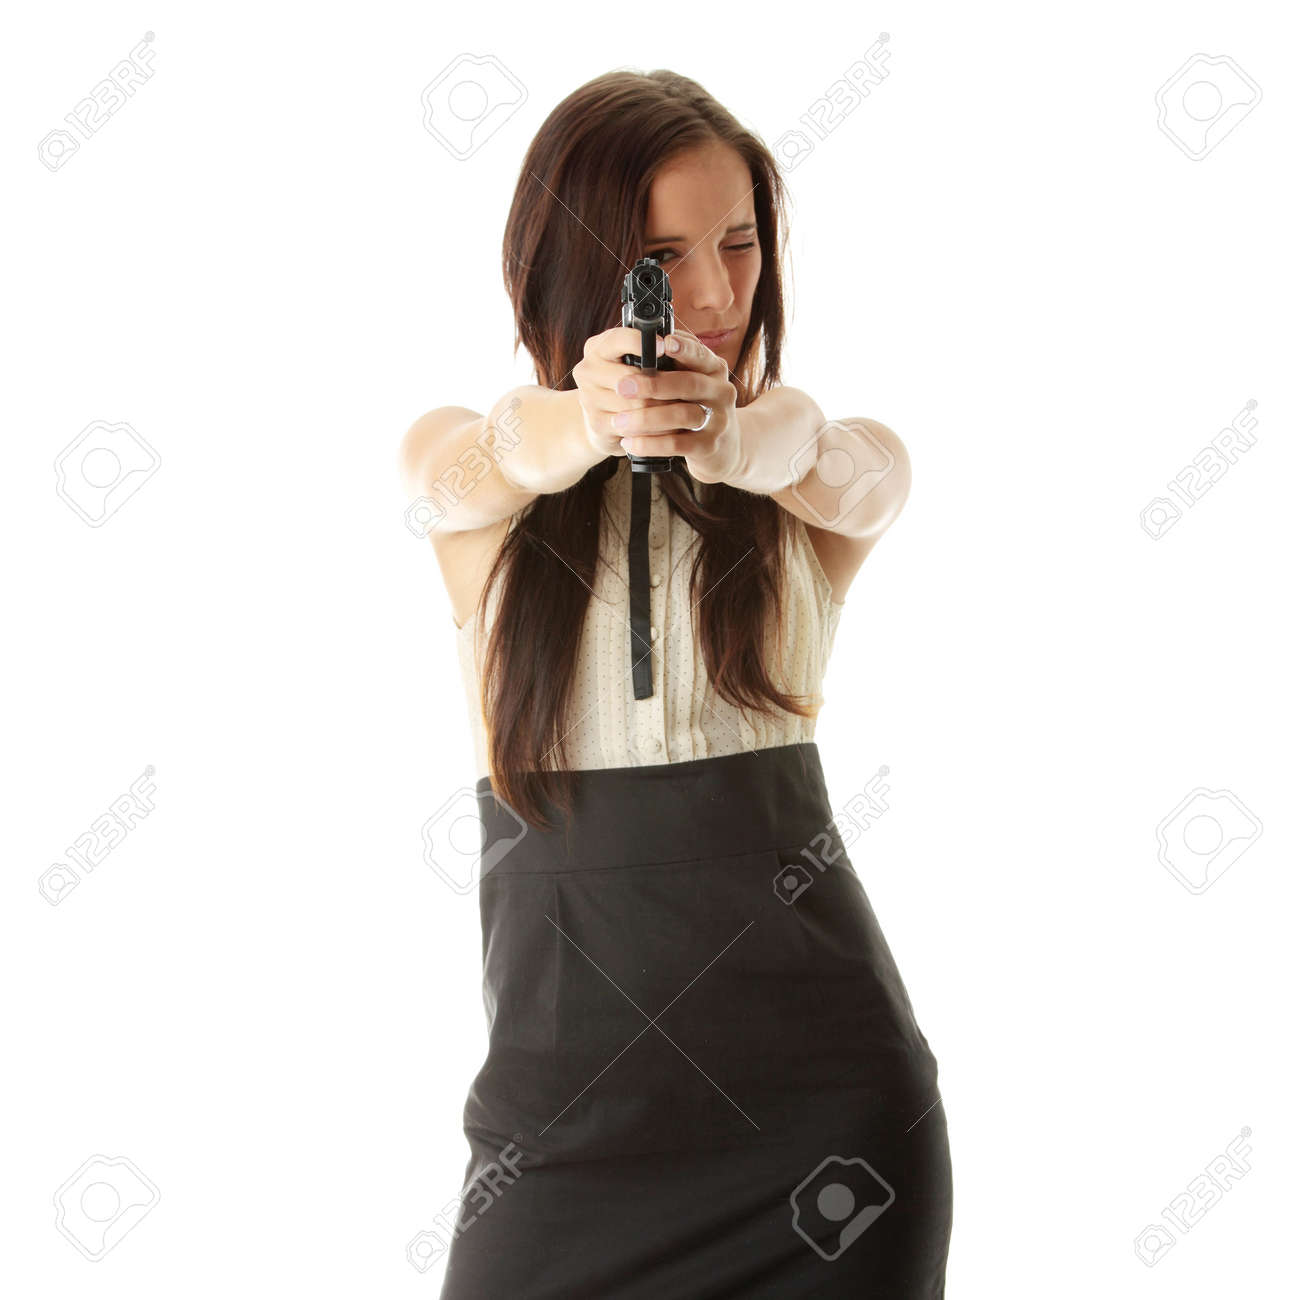 Young woman with hand gun isolated Stock Photo - 6300265